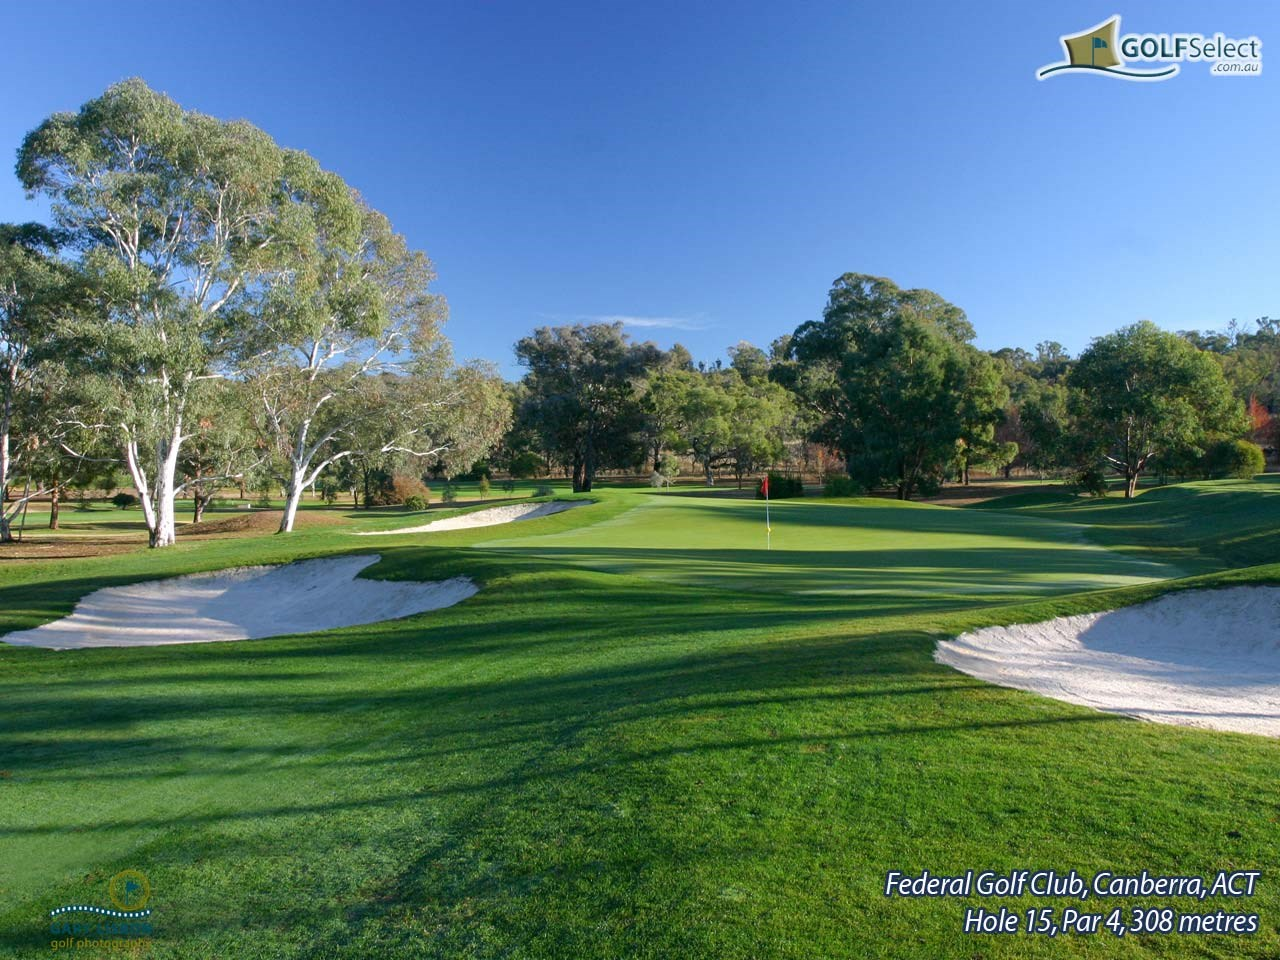 Federal Golf Club Hole 15, Par 4, 308 metres